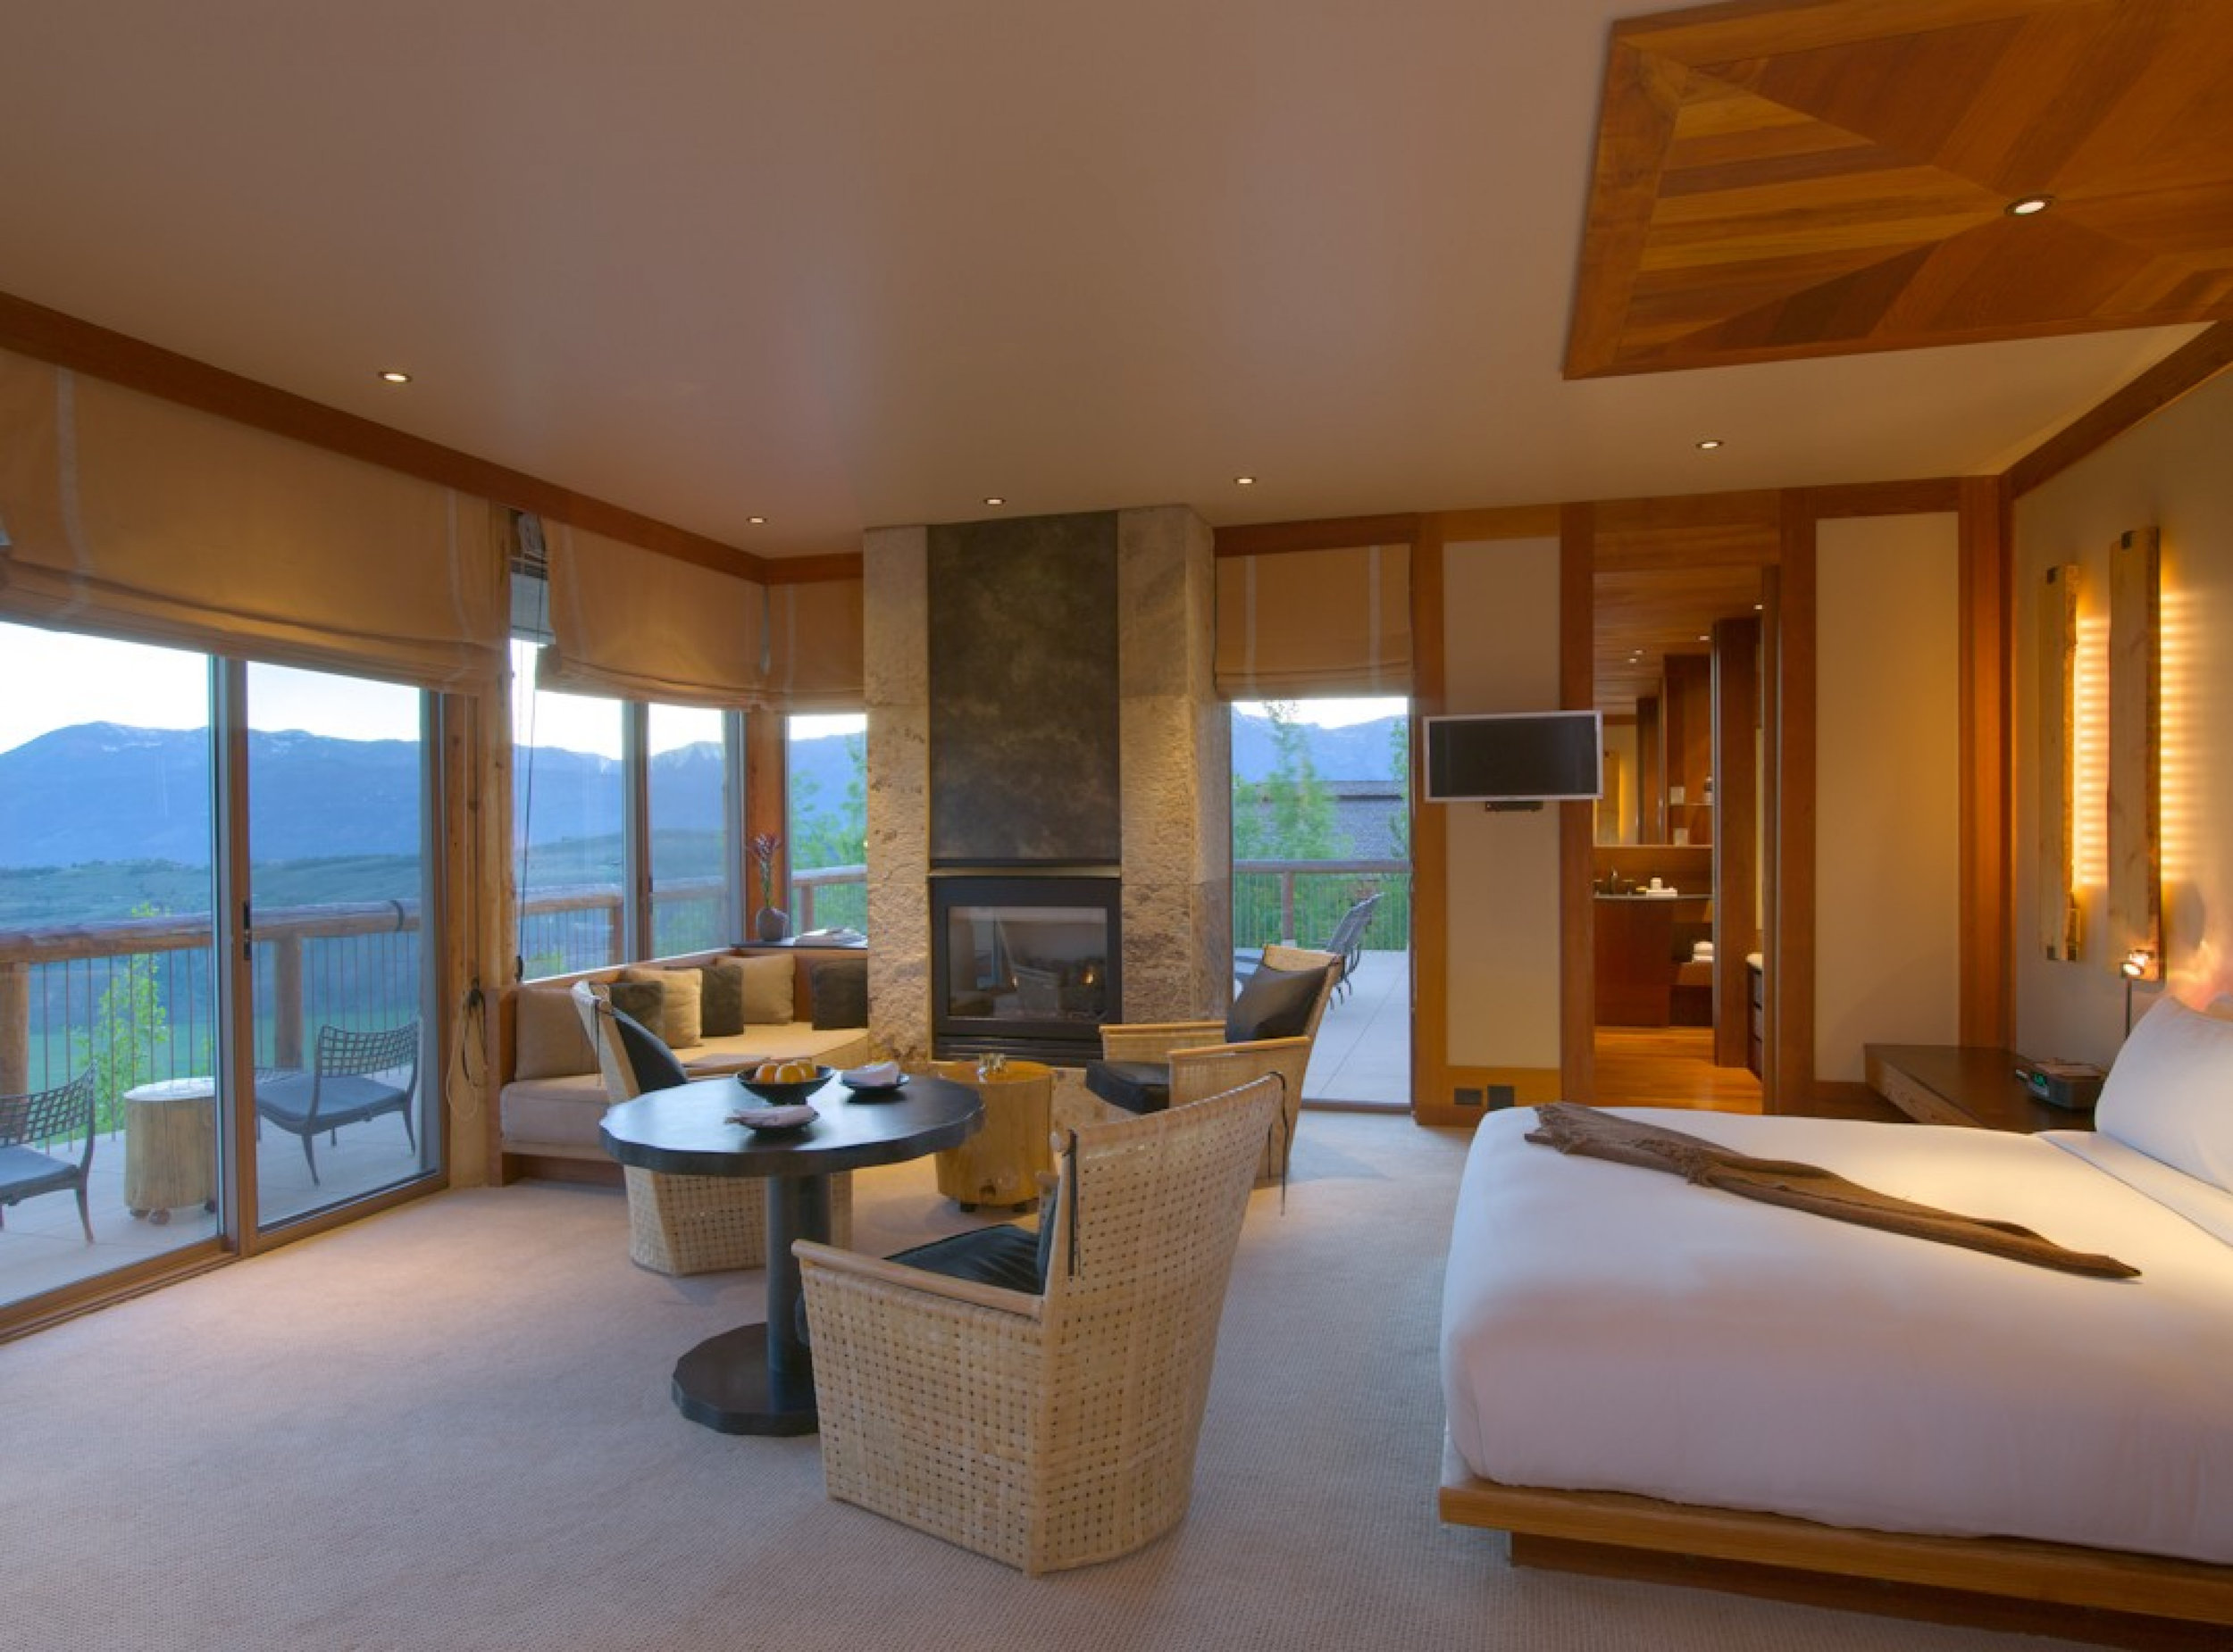 Suite Interior at Amangani Resort - Jackson Hole, Wyoming